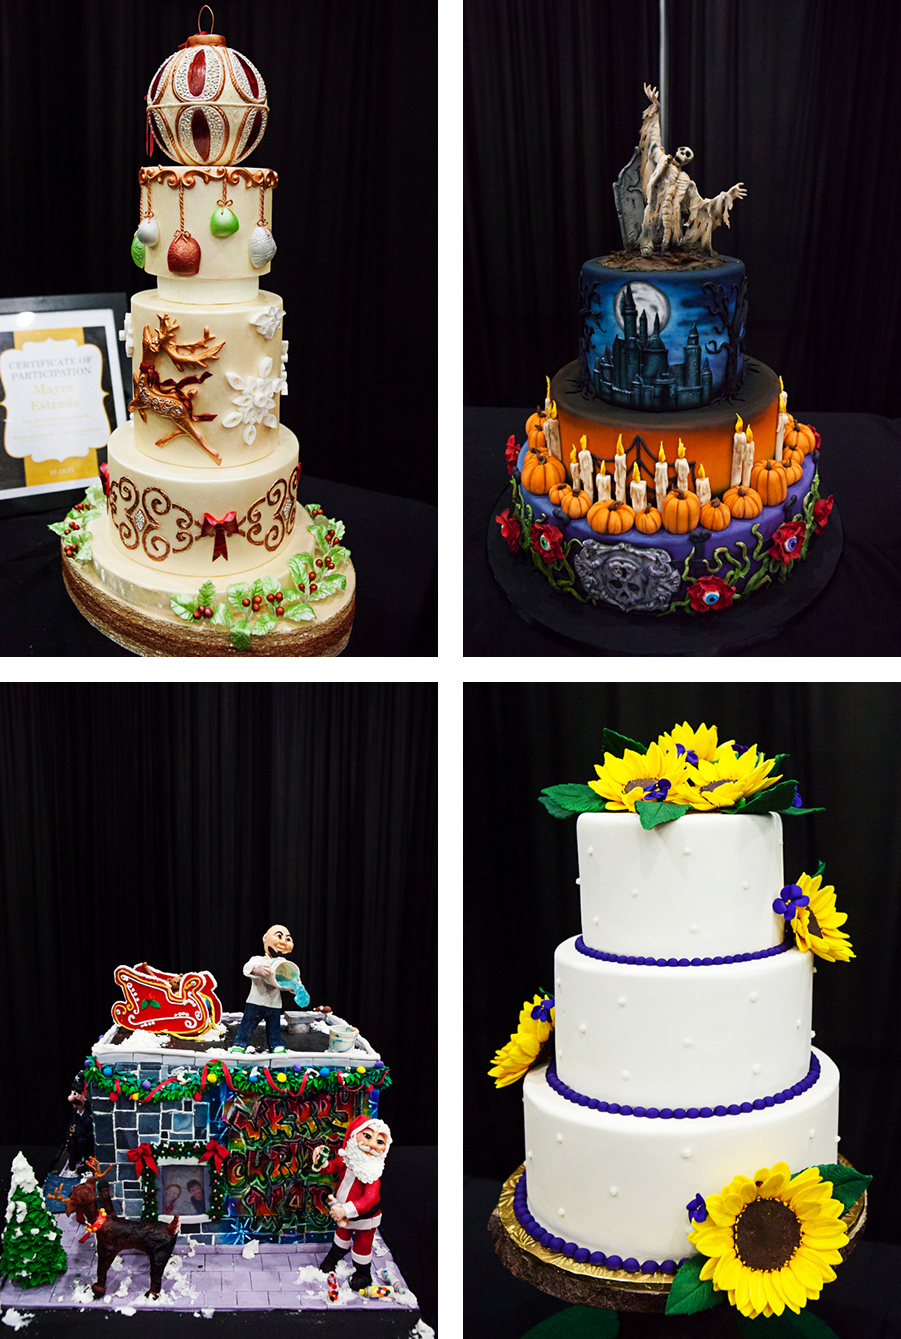 cake-expo, cake, expo, professional cake decorating contest